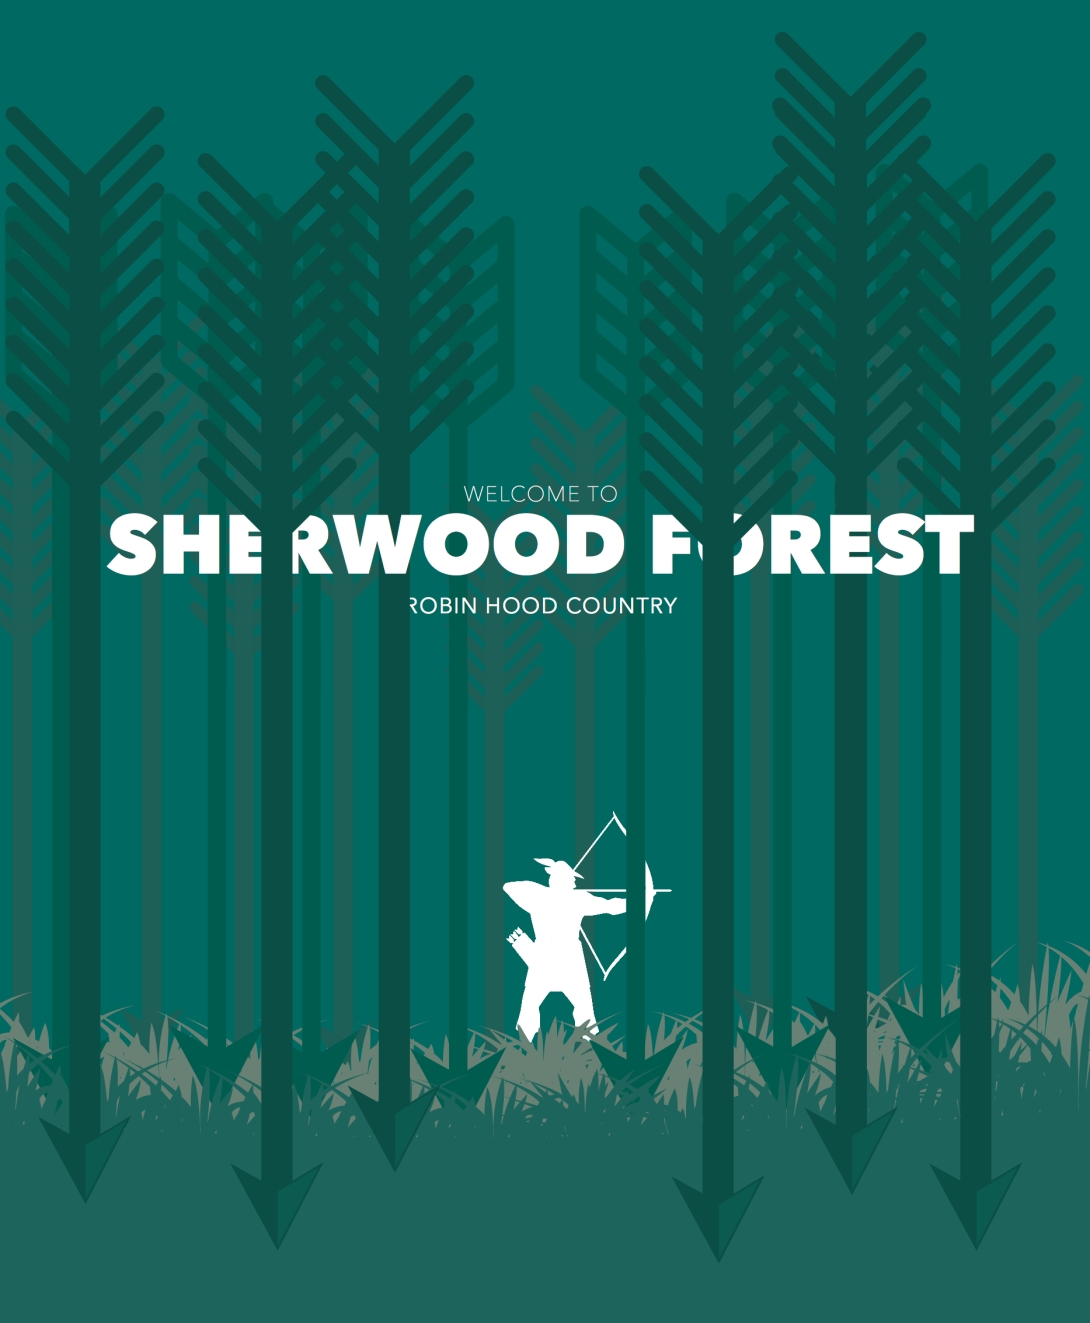 advertising poster concept for Robin Hood and Sherwood Forest - arrows